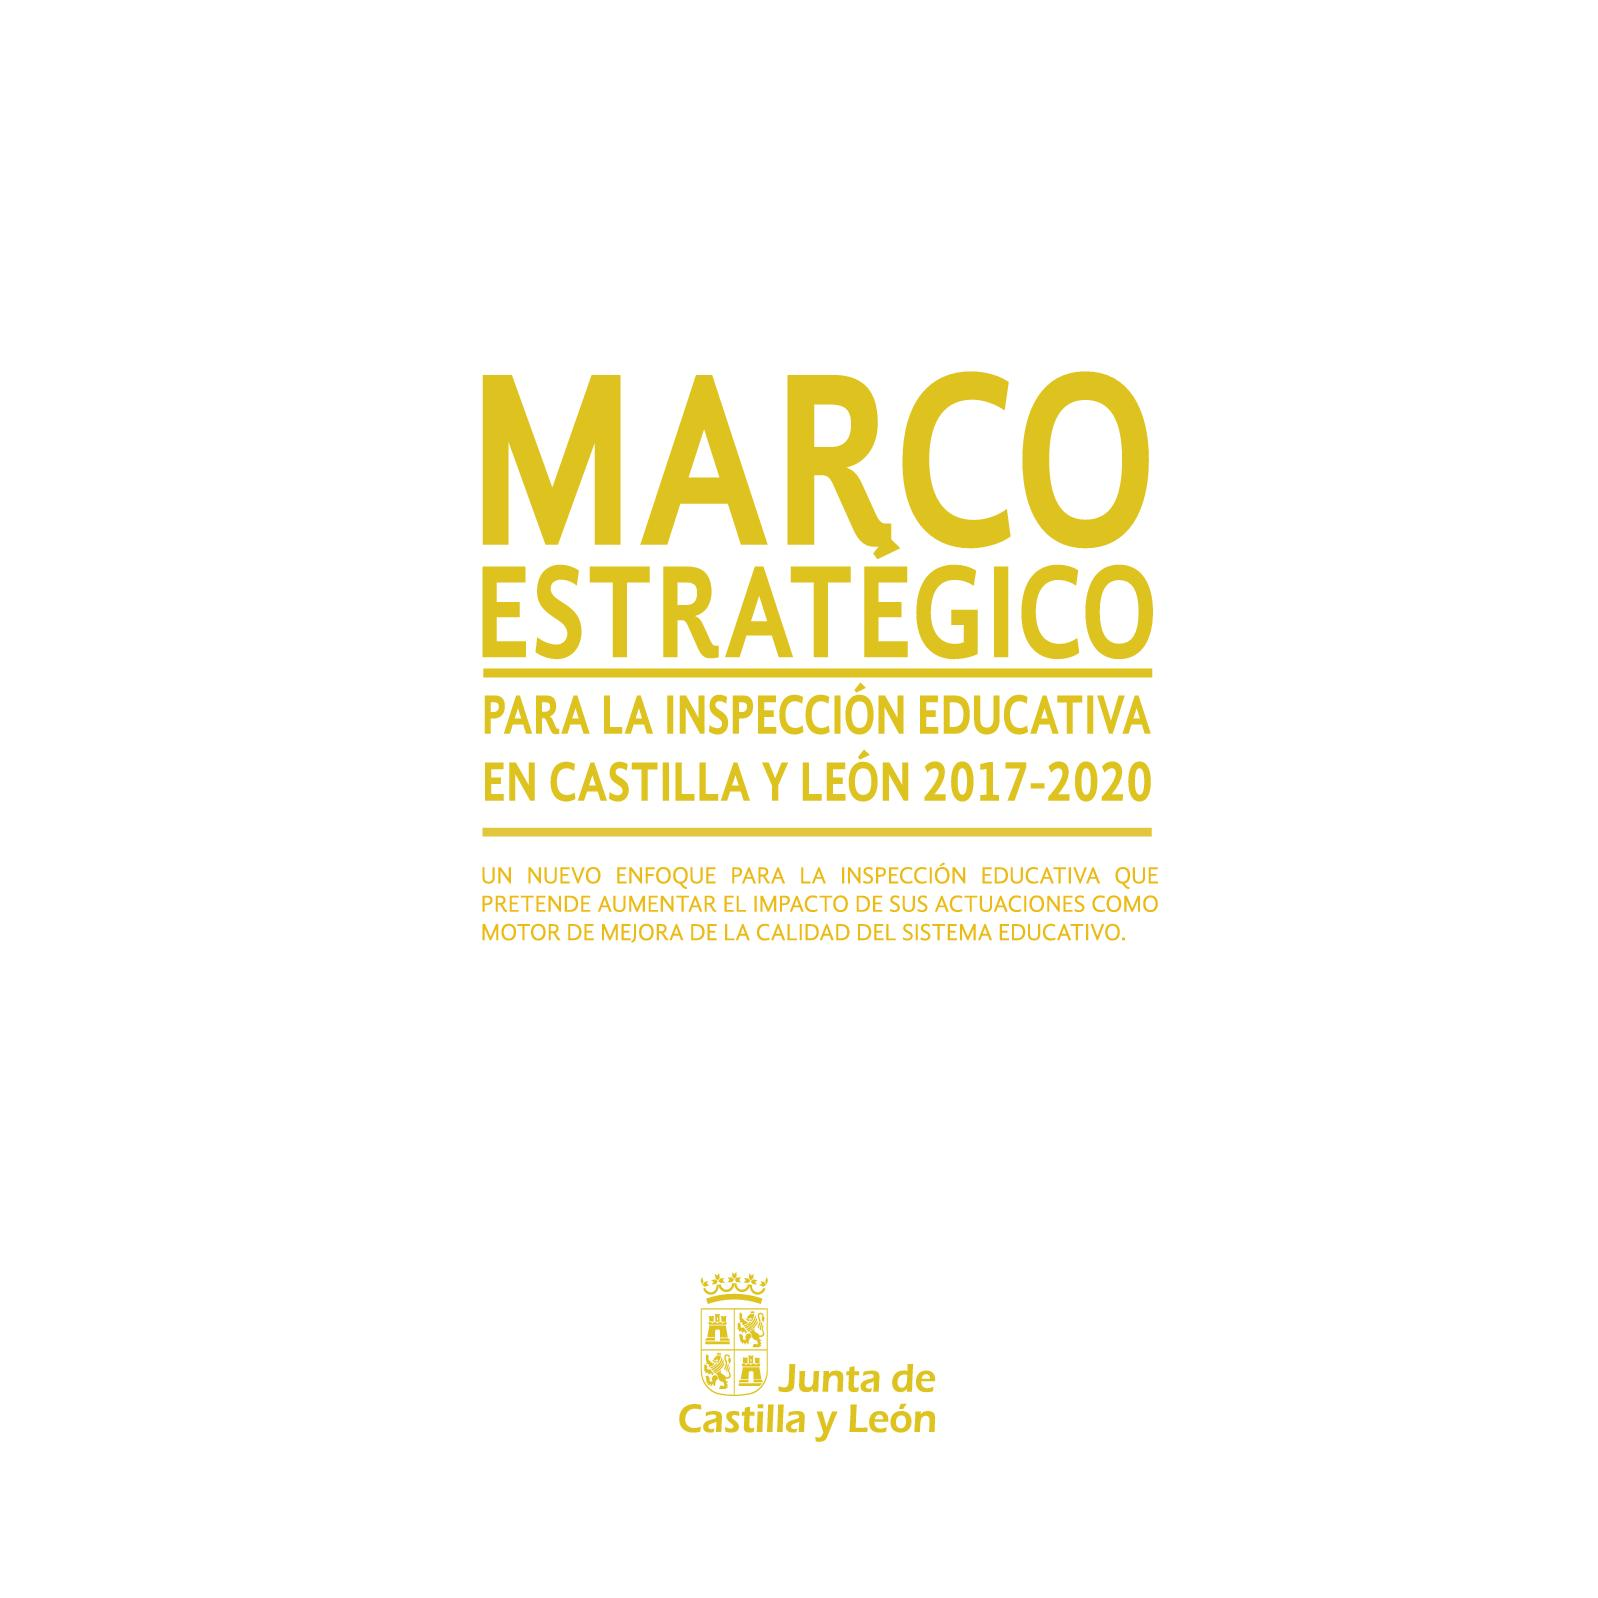 Calendario Escolar Madrid 202018.Calameo Marco Estrategico Inspeccion Educativa 2017 2020